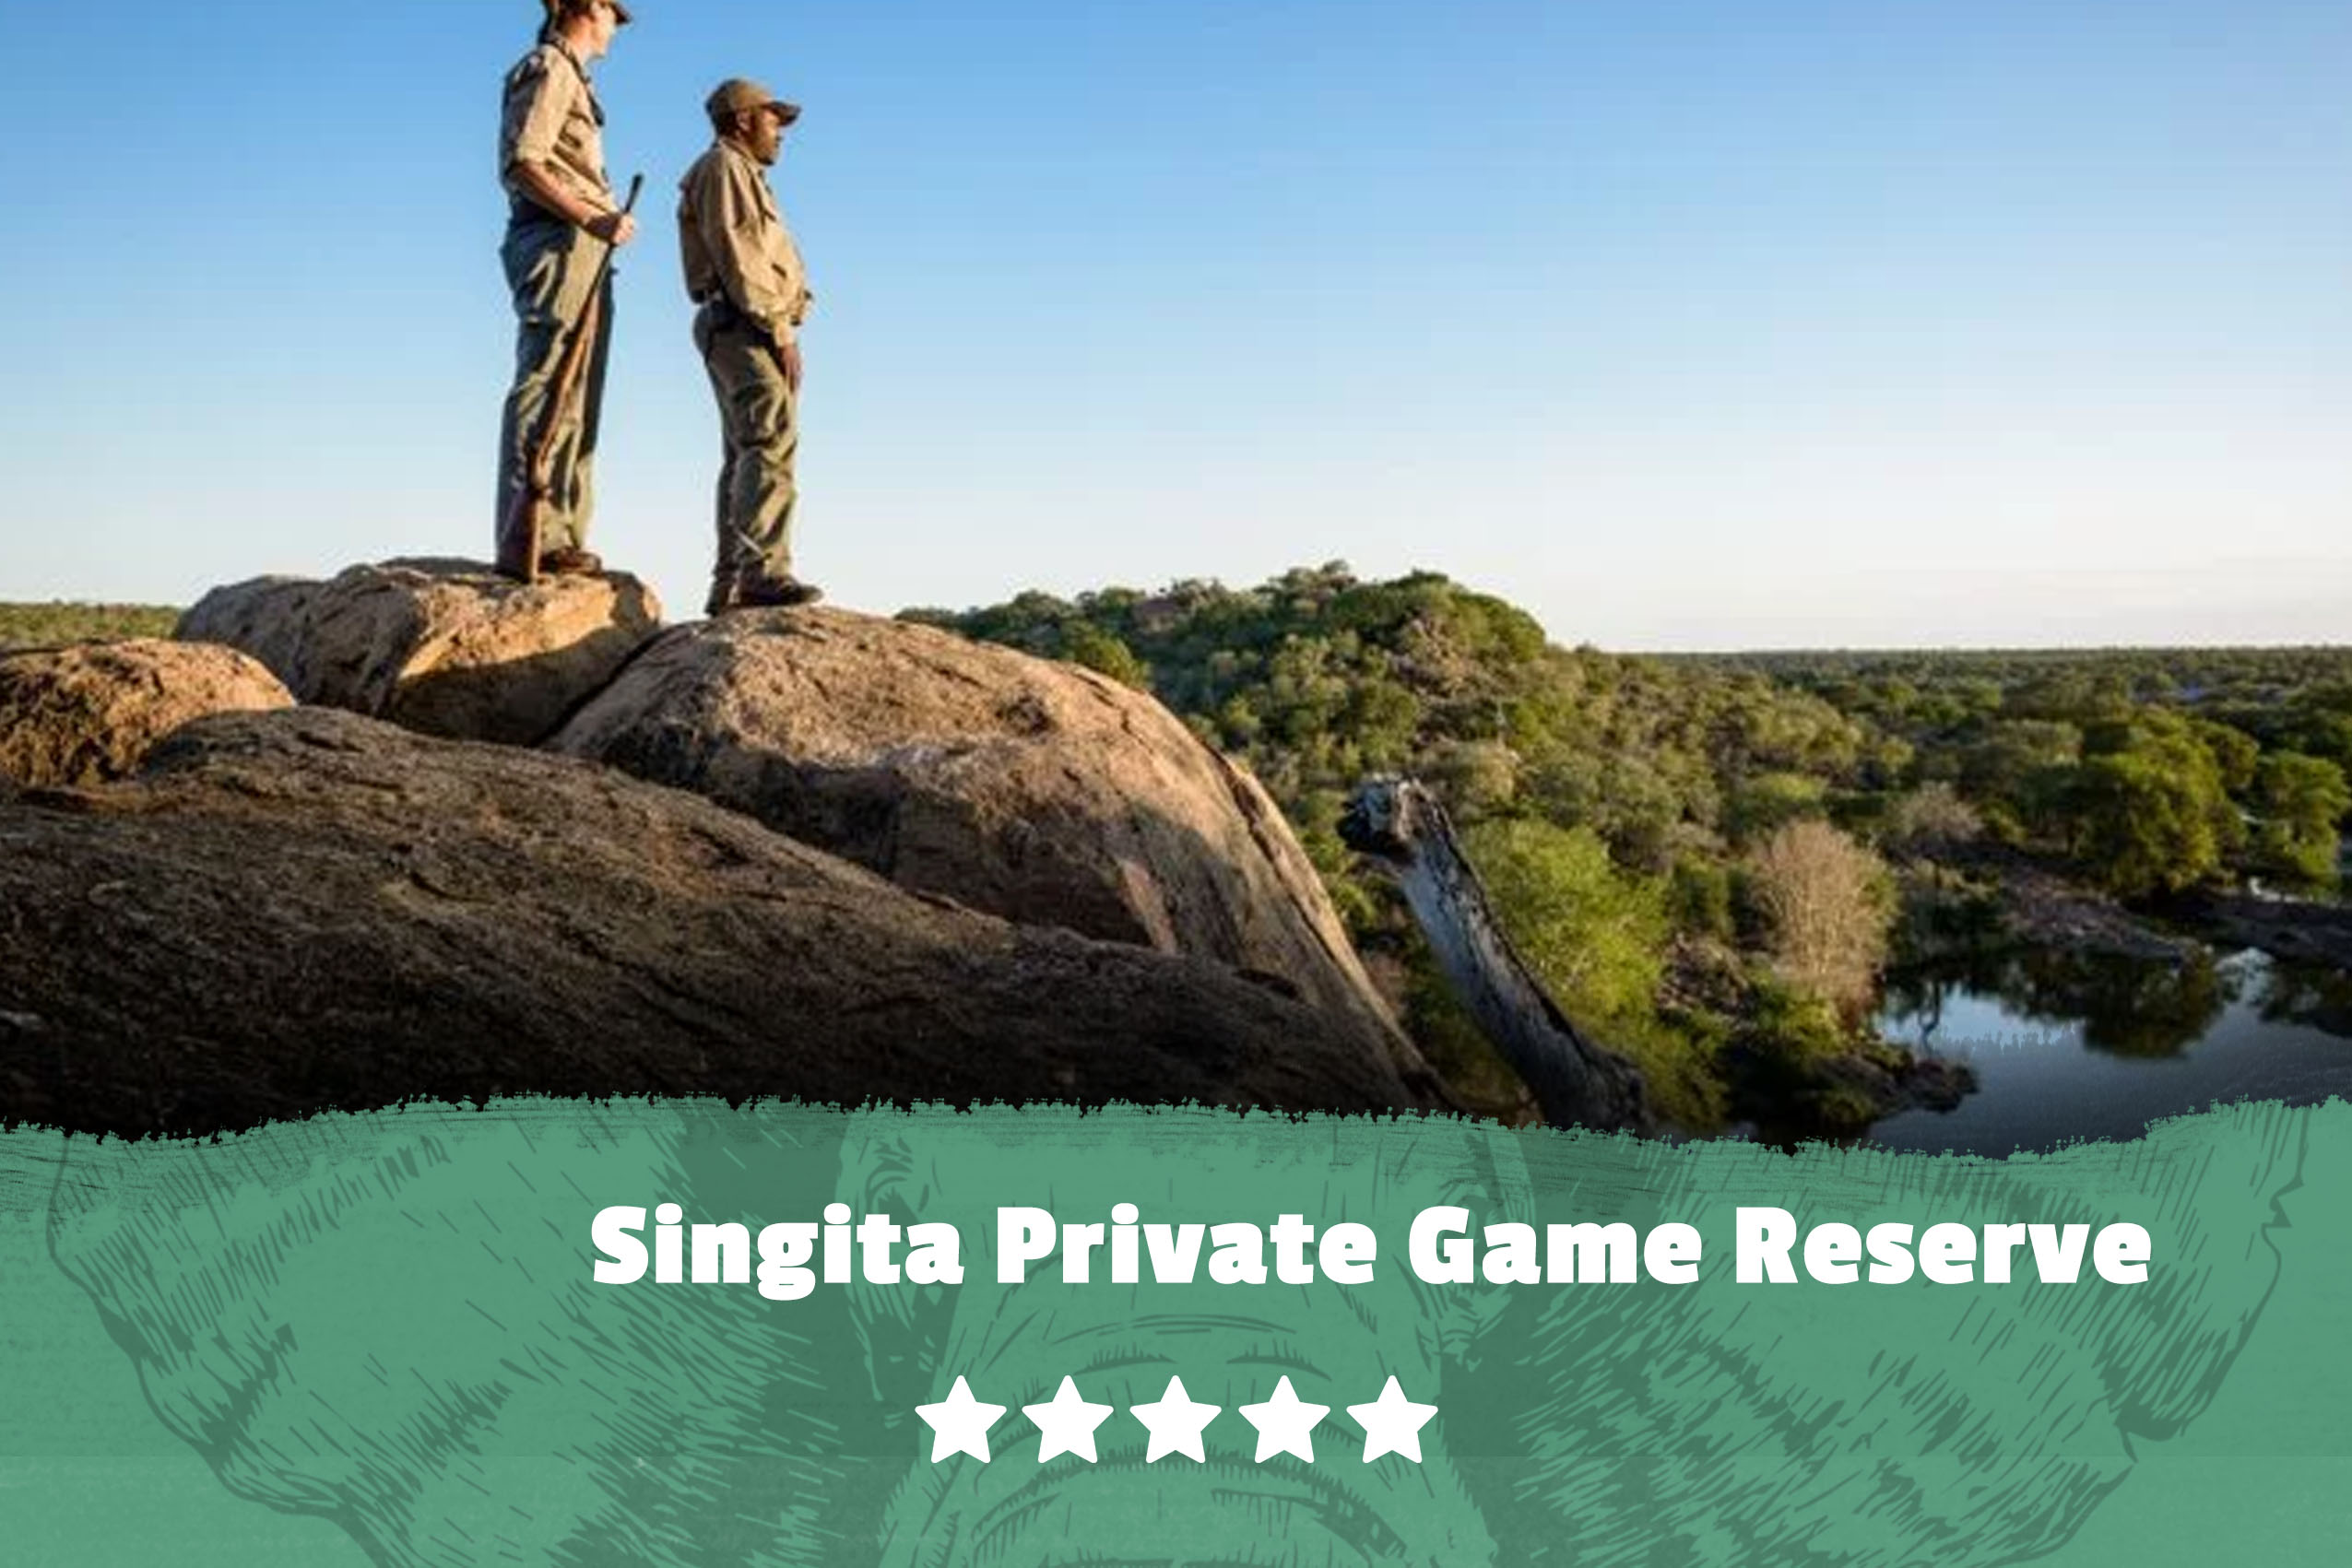 Kruger featured image Singita Private Game Reserve